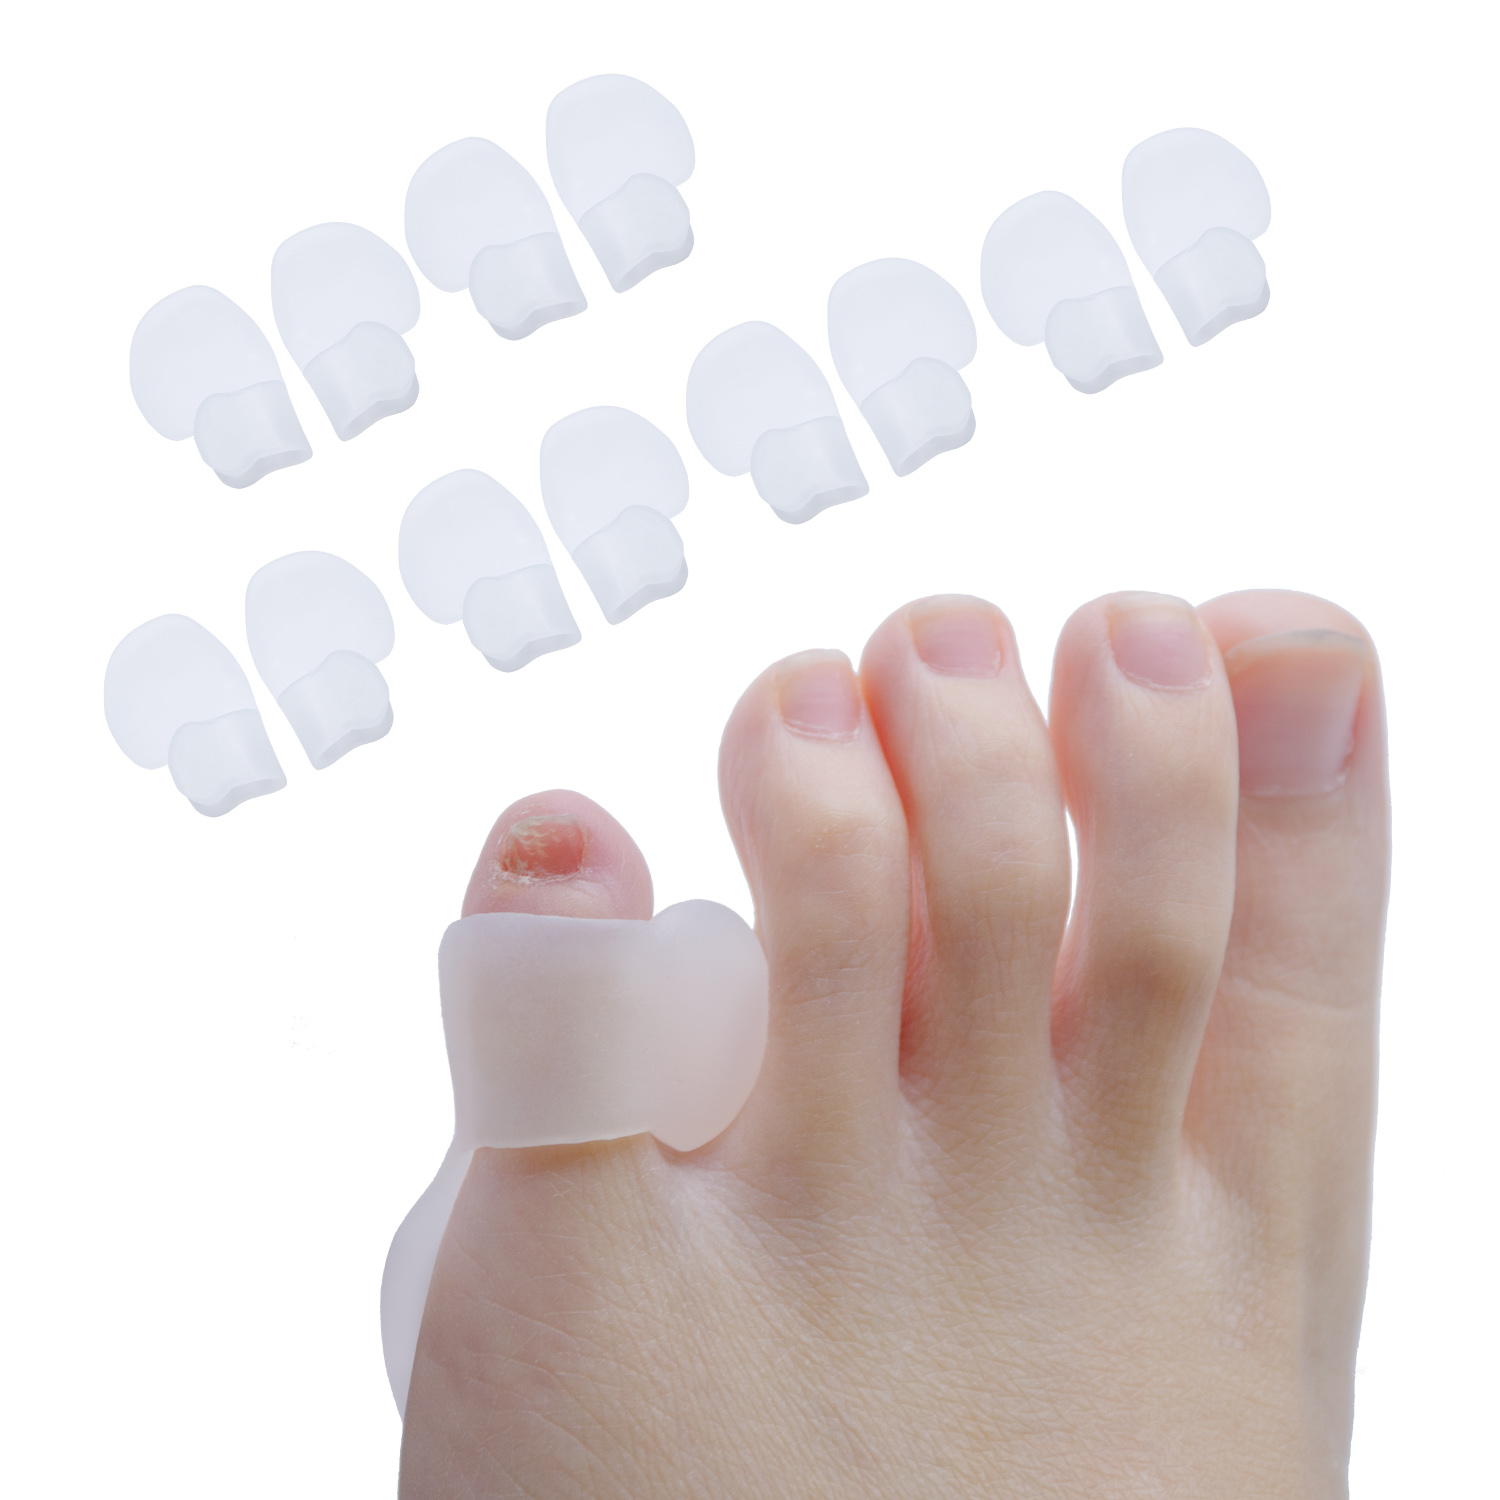 2Pcs=1Pair Gel Silicone Hallux Valgus Foot Care Tool Bunion Corrector Bone Toe Protector Straightener Toe Spreader Pedicure